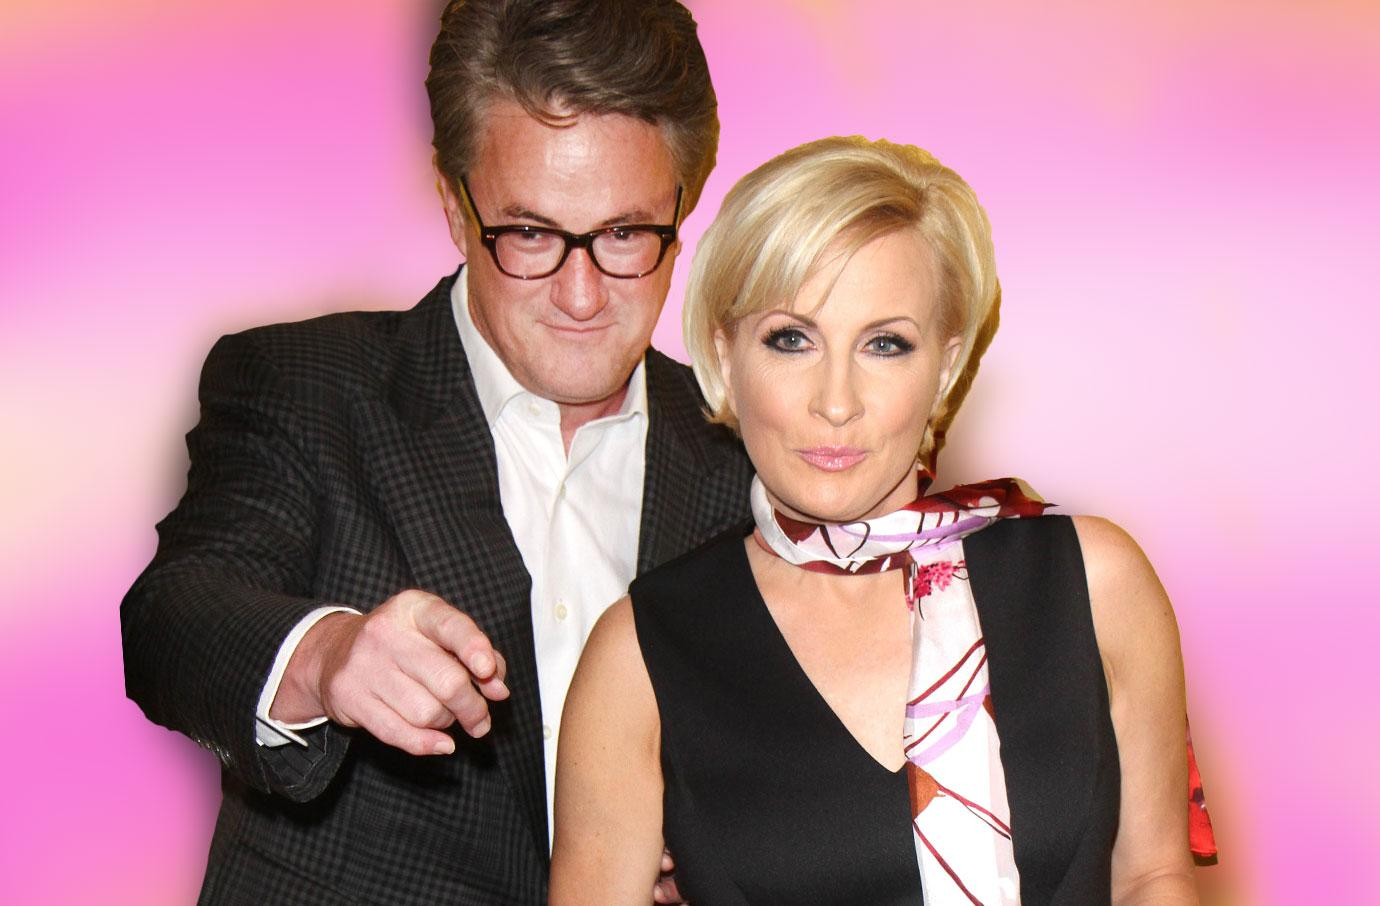 'Morning Joe' Co-Hosts Joe Scarborough and Mika Brzezinski Hooked Up While Married To Others!